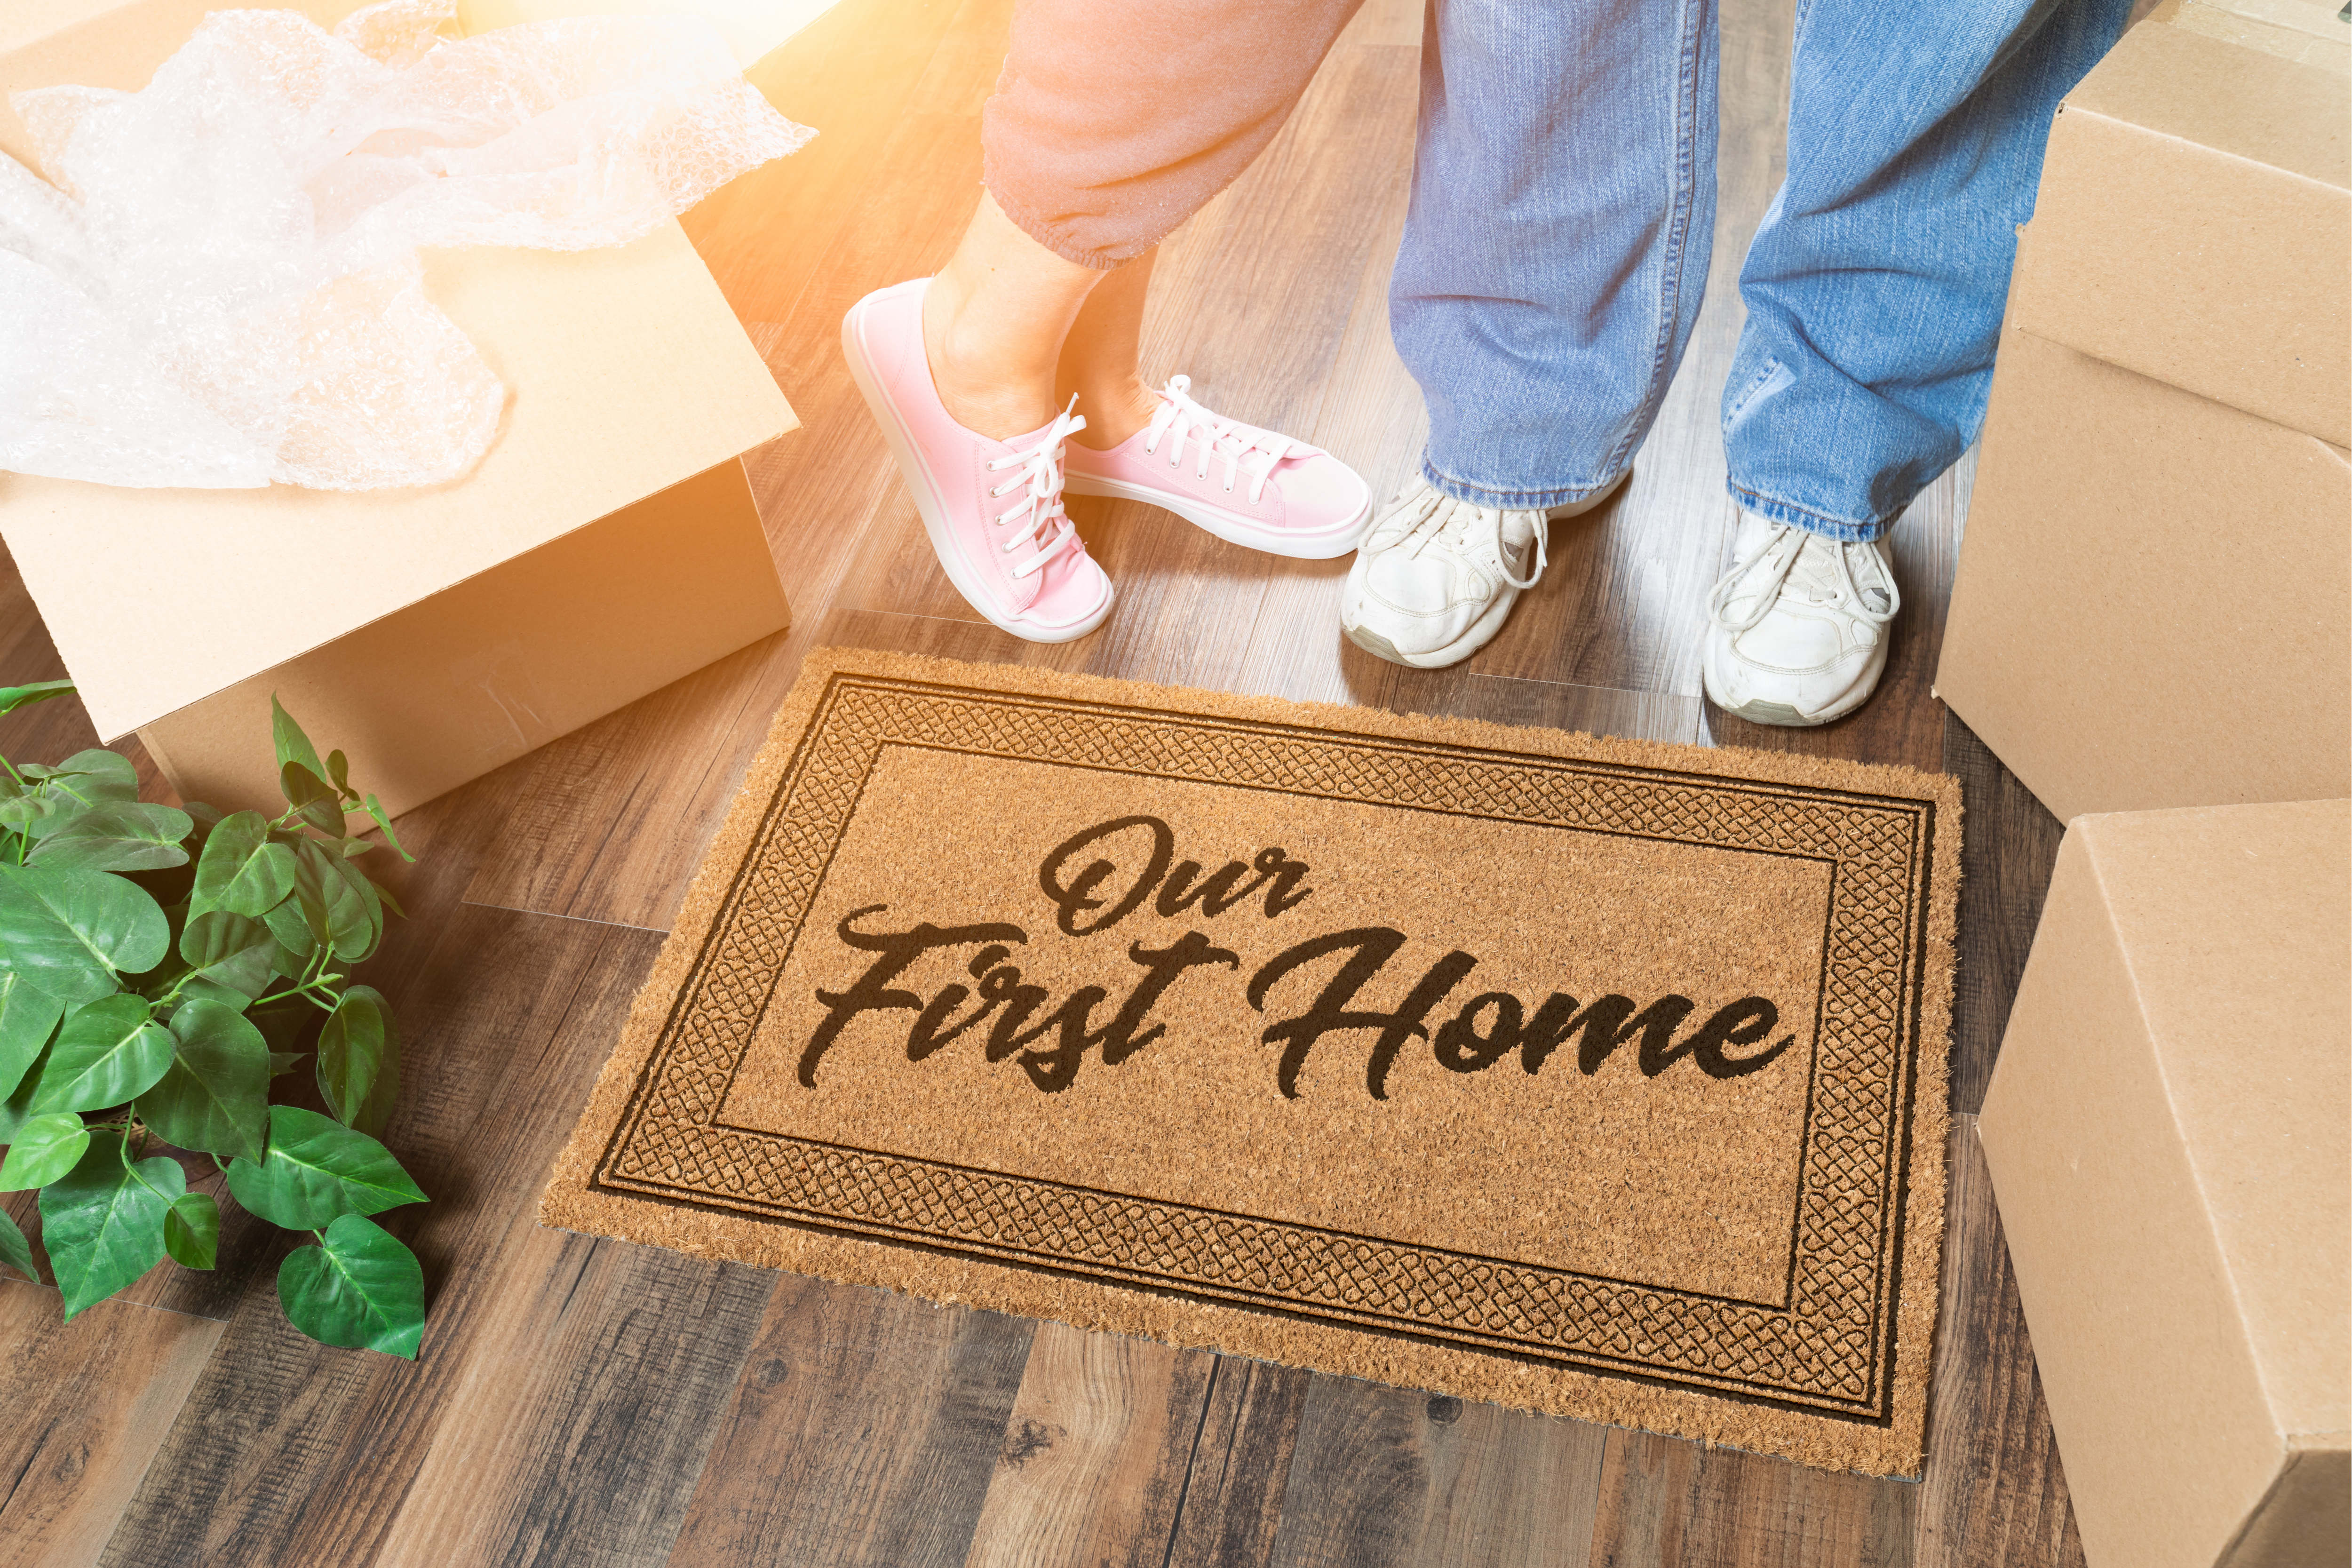 Government measures for First home buyers